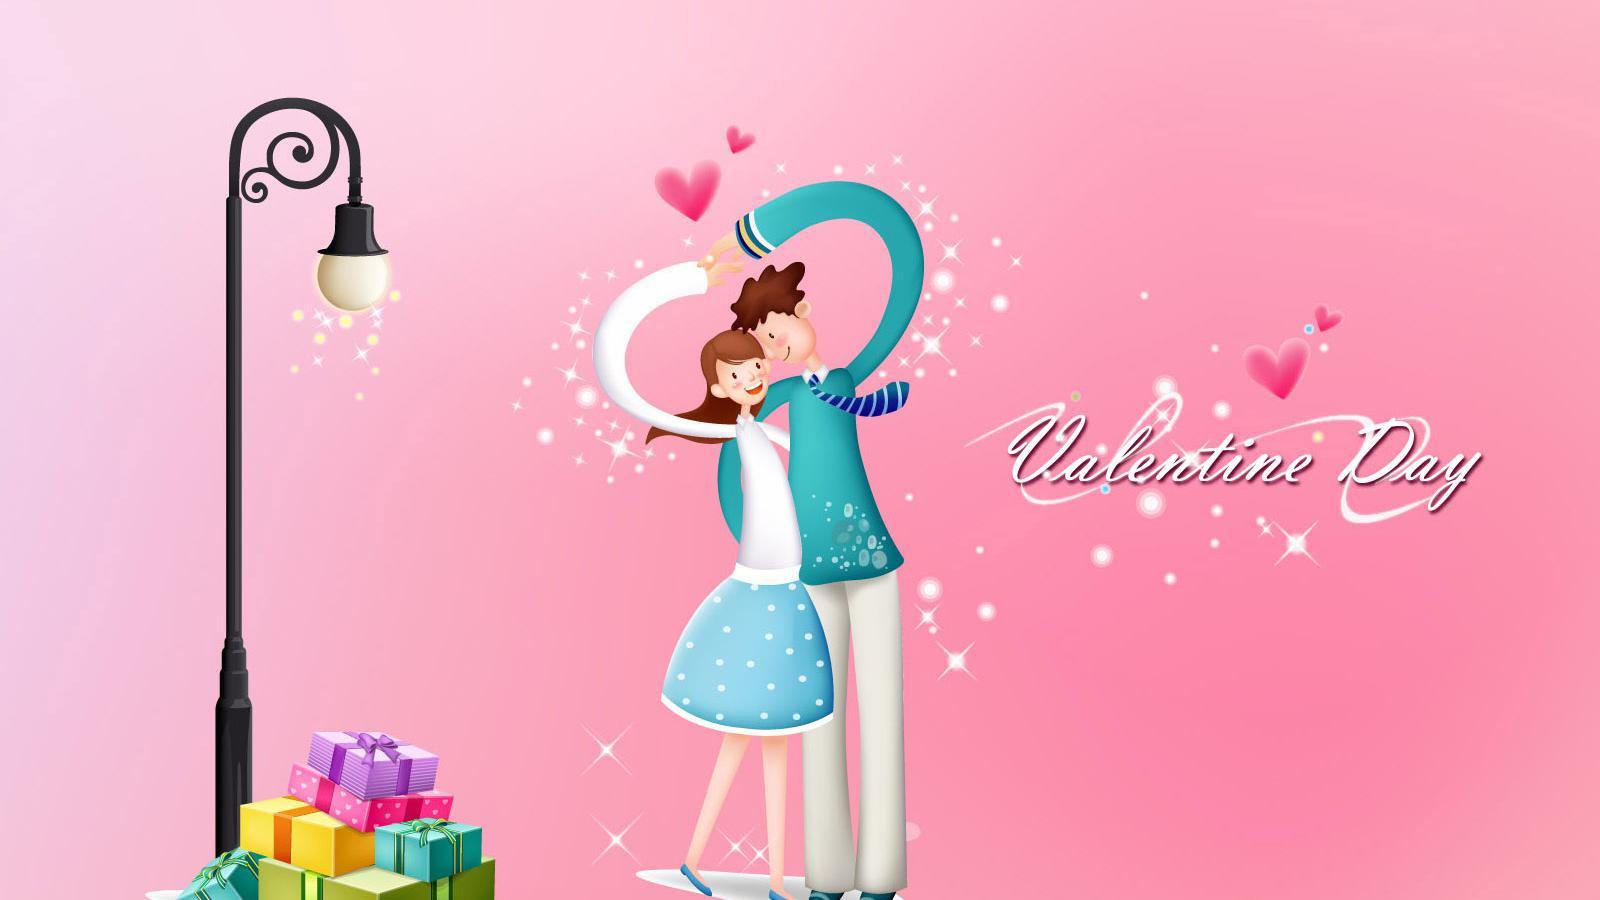 Valentines Day Wallpapers HD 14th FEB images 2020 for lovers 1600x900